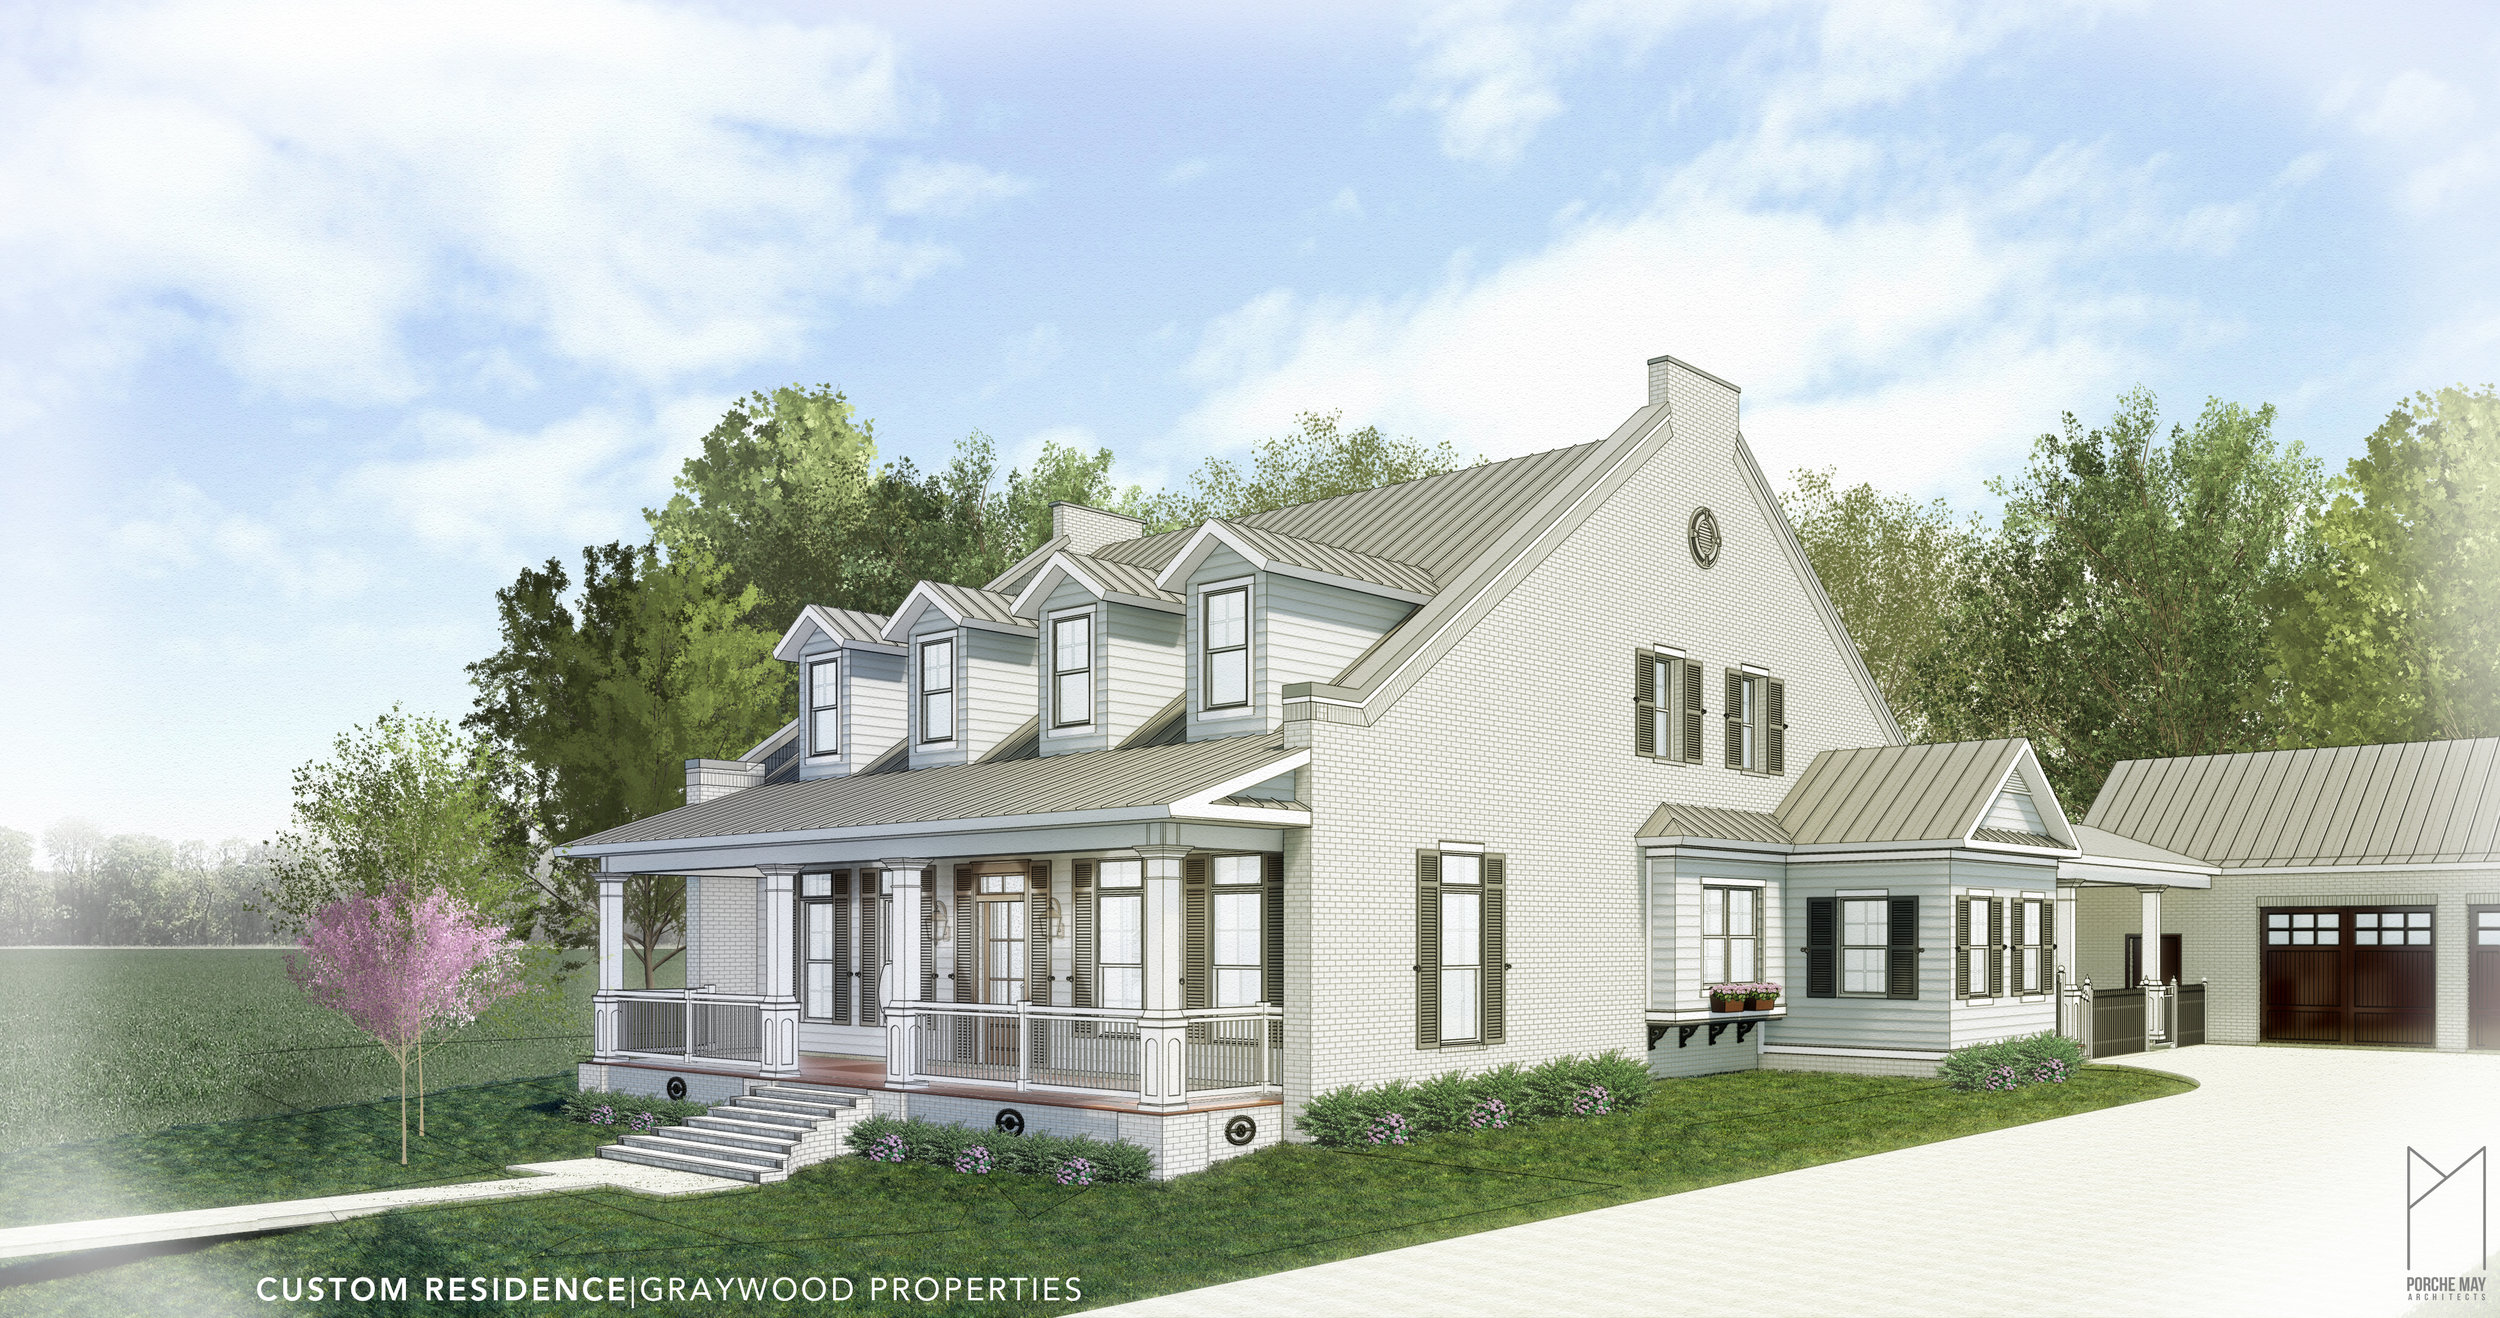 This classical Southern Cottage flows with an open floor plan, including 2-story height living, dining and entertaining spaces. Over 1000 sq ft of wrap-around rear porches encompass a swimming pool including a custom outdoor built-in pizza kitchen.